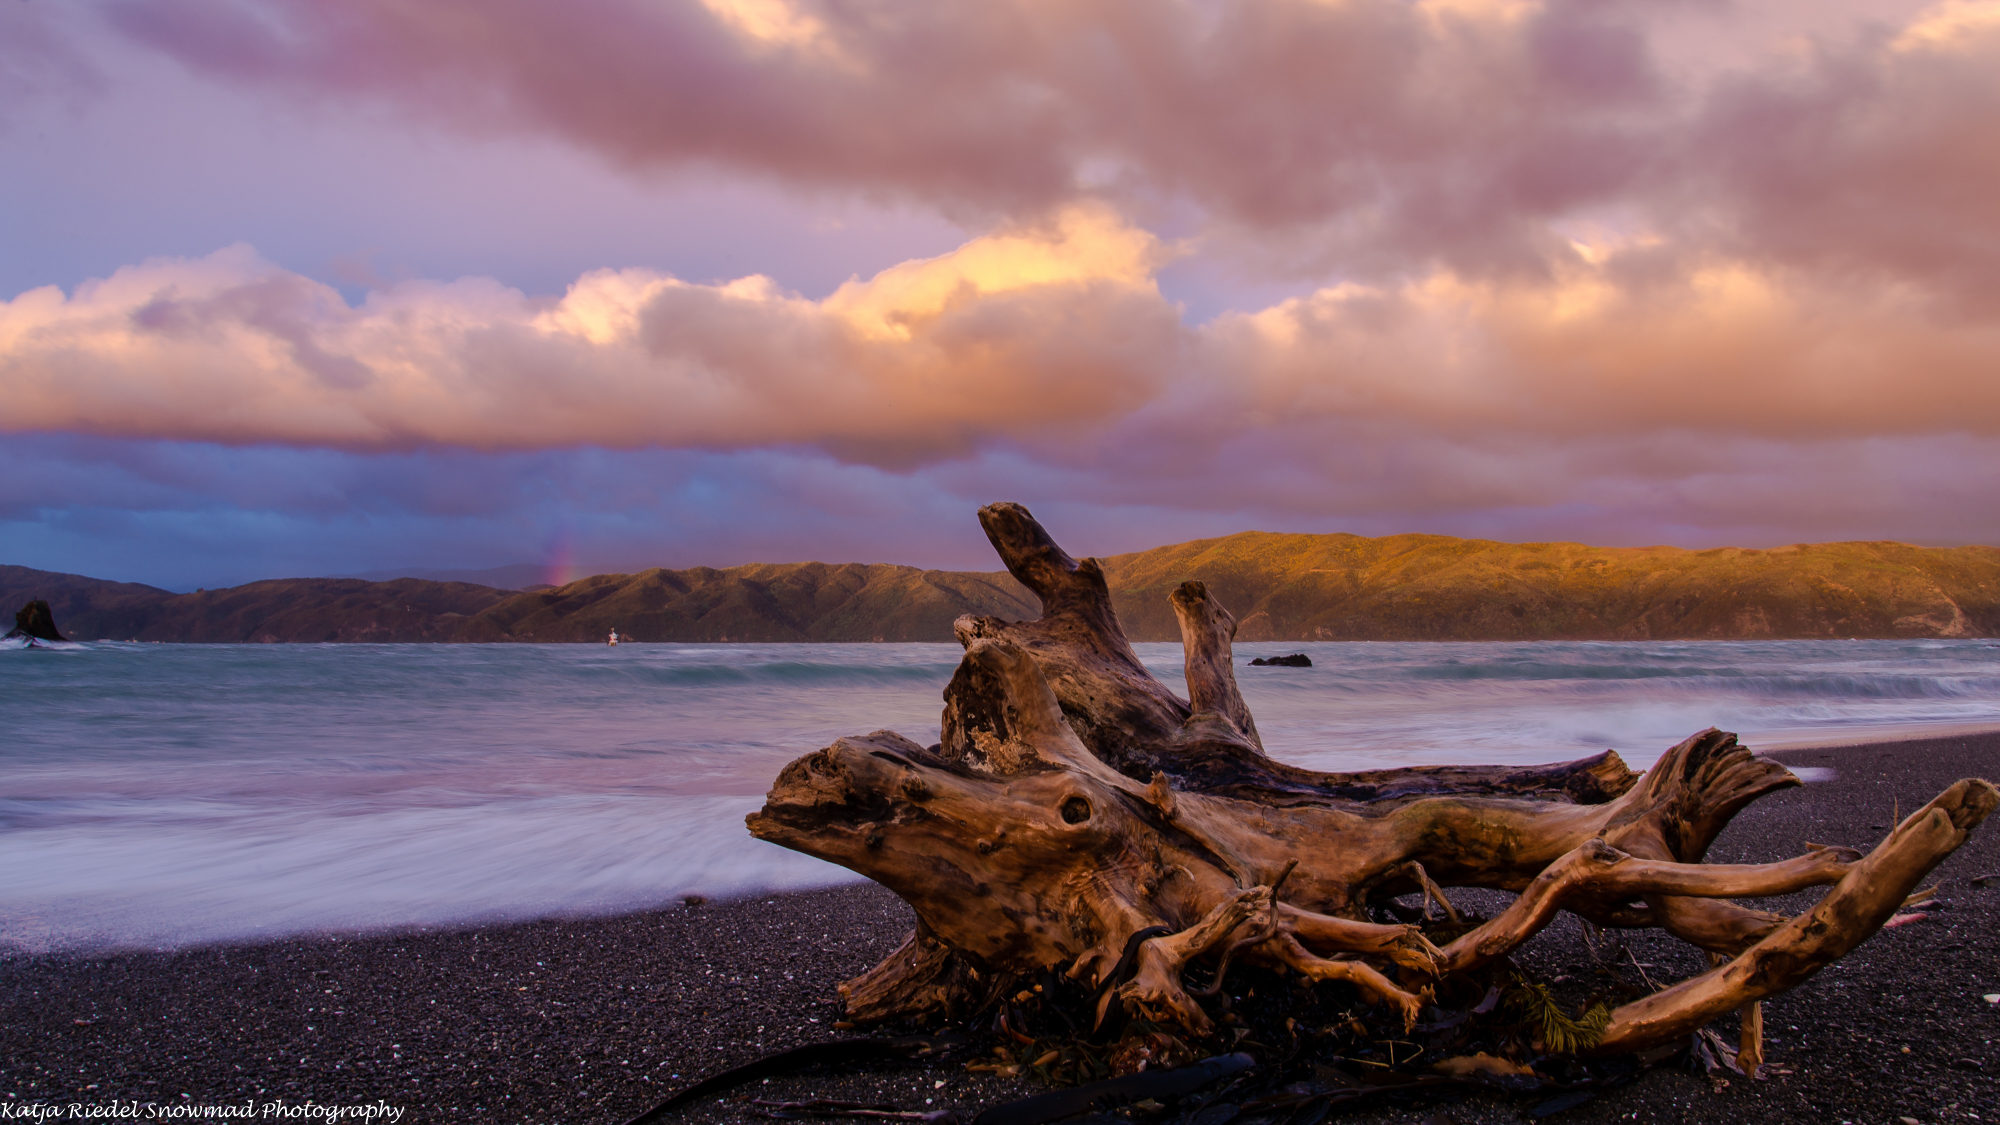 Seatoun beach, Wellington, New Zealand, New Zealand